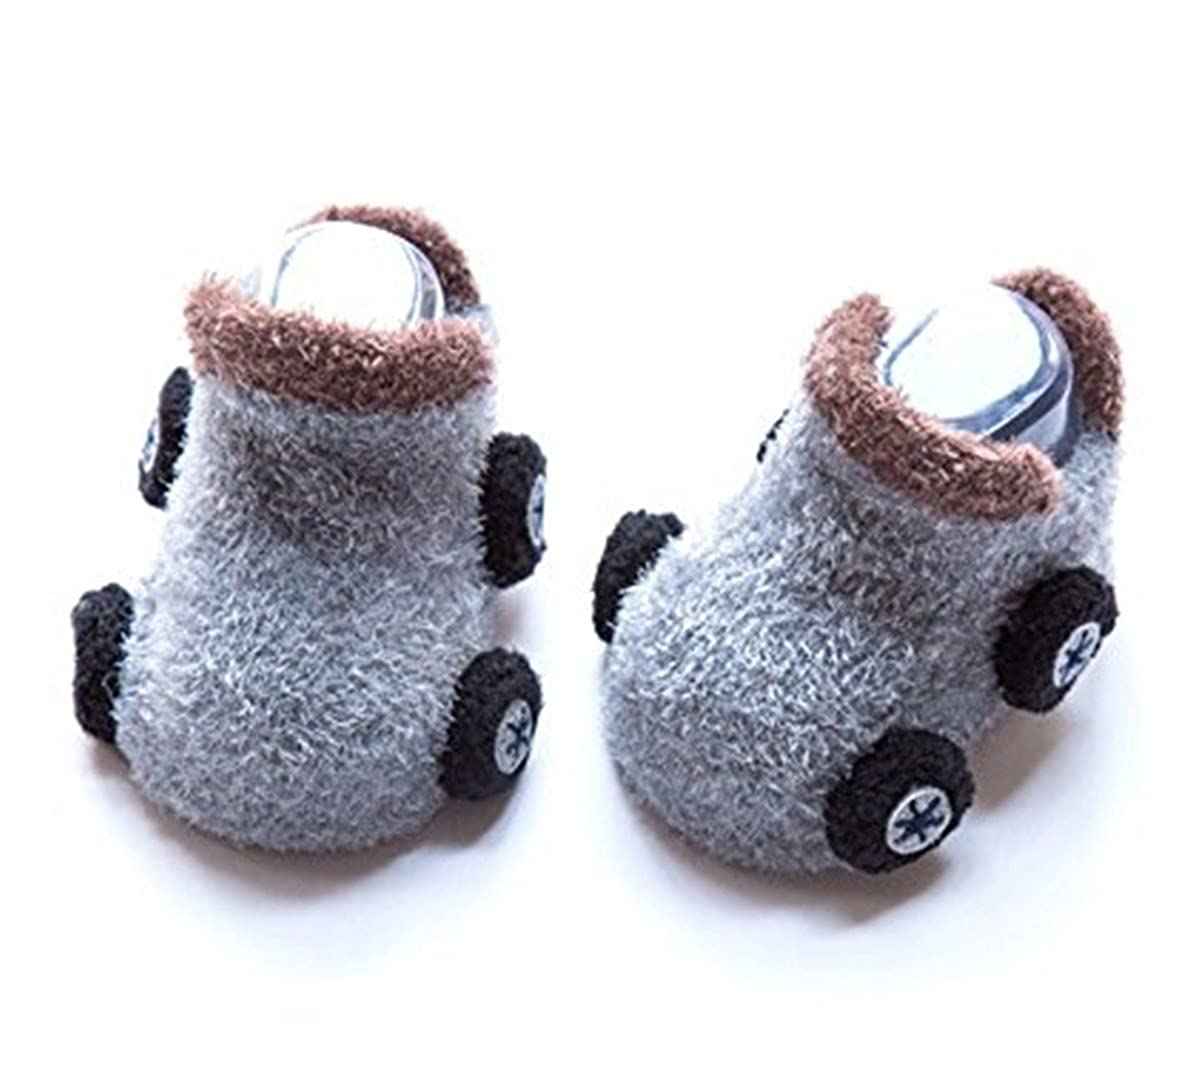 2 Pair Qinju Kids Toddler Slipper Socks Indoor Booties Cozy Warm Fuzzy Non Slip Grippers